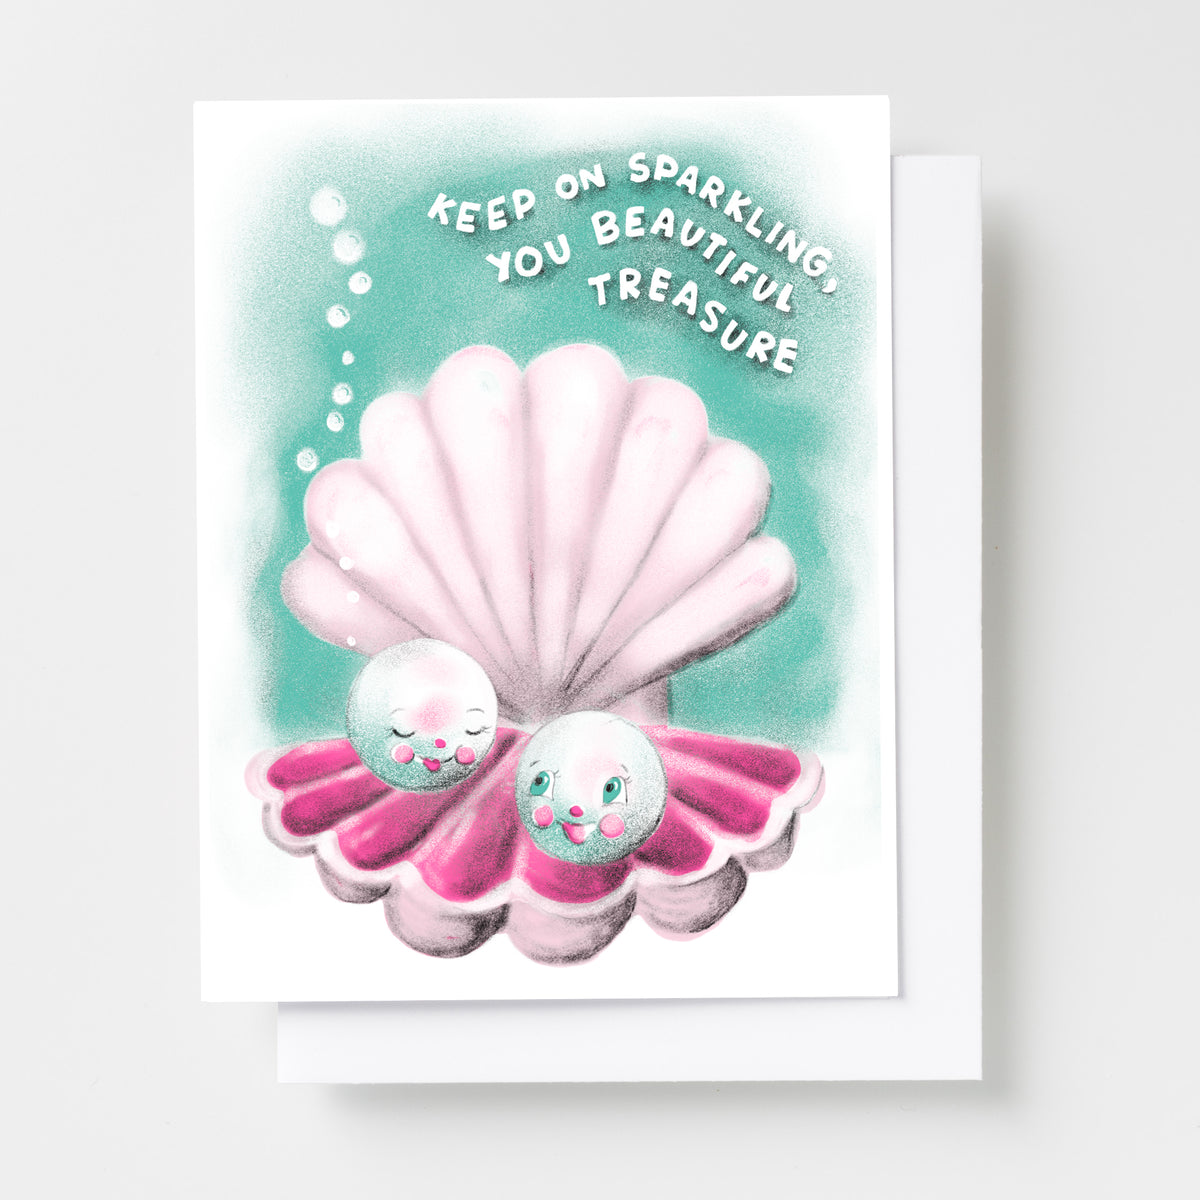 Keep On Sparkling, Treasure - Shell Risograph Card